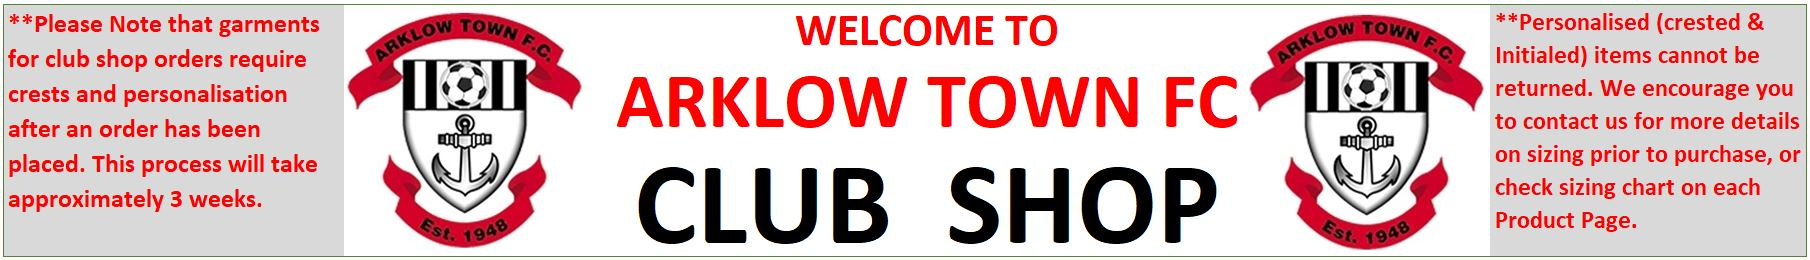 Arklow Town FC